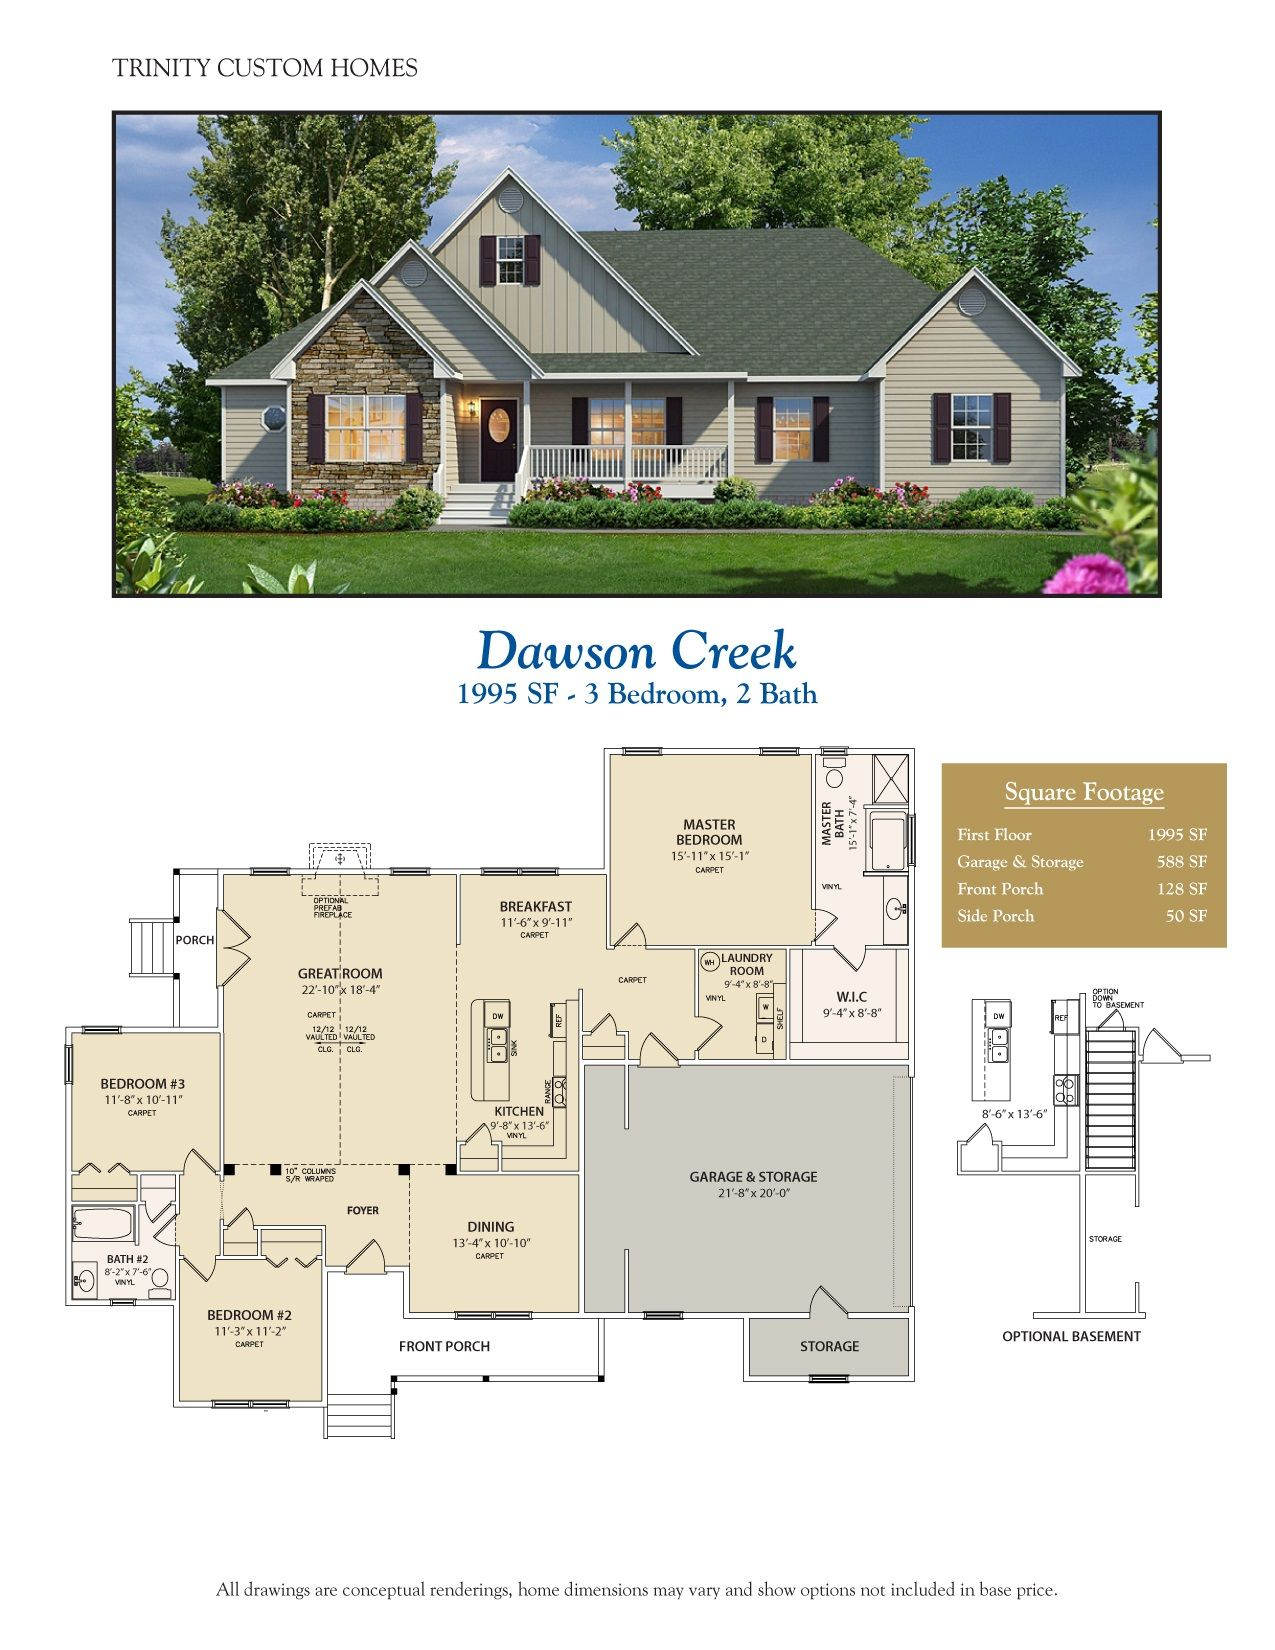 Take A Look At All Of Trinity Custom Homes Georgia Floor Plans Here We Have A Lot To Offer Craftsman Style House Plans My House Plans Modern Farmhouse Plans